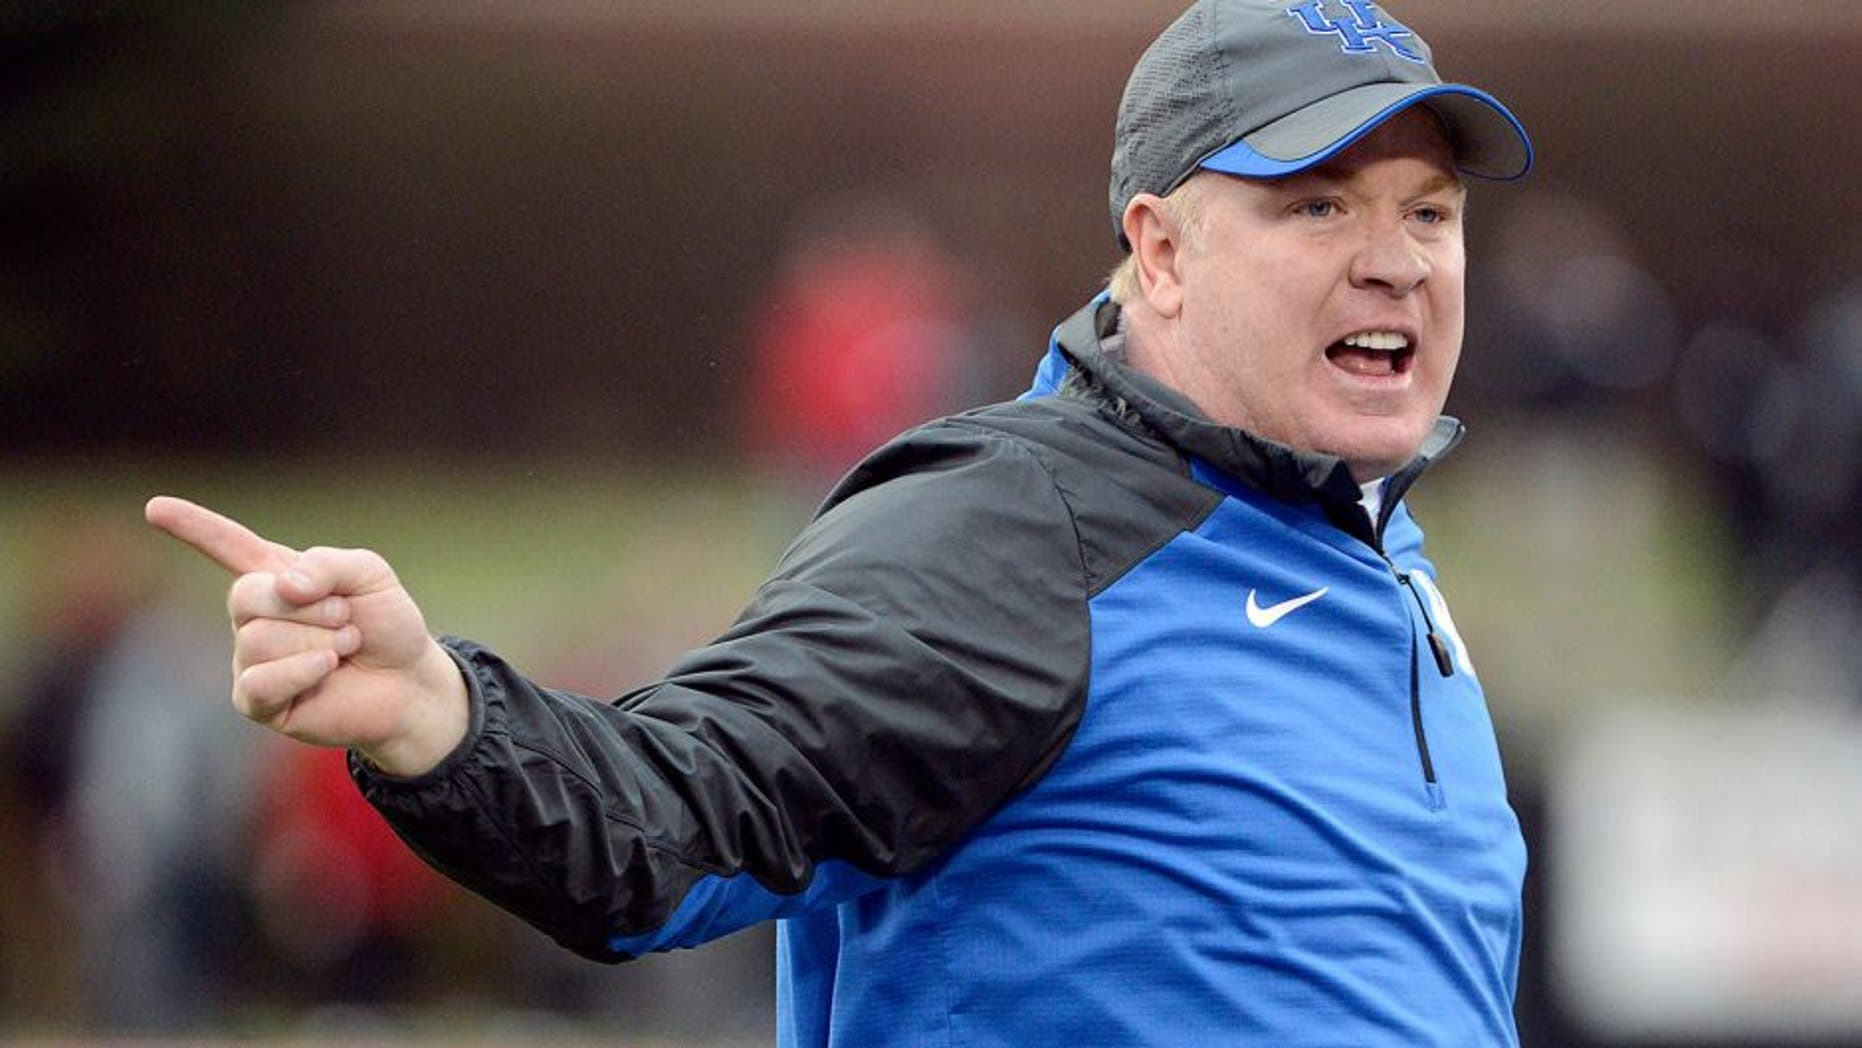 Nov 29, 2014; Louisville, KY, USA; Kentucky Wildcats head coach Mark Stoops reacts during the second half against the Louisville Cardinals at Papa John's Cardinal Stadium. Louisville defeated Kentucky 44-40. Mandatory Credit: Jamie Rhodes-USA TODAY Sports